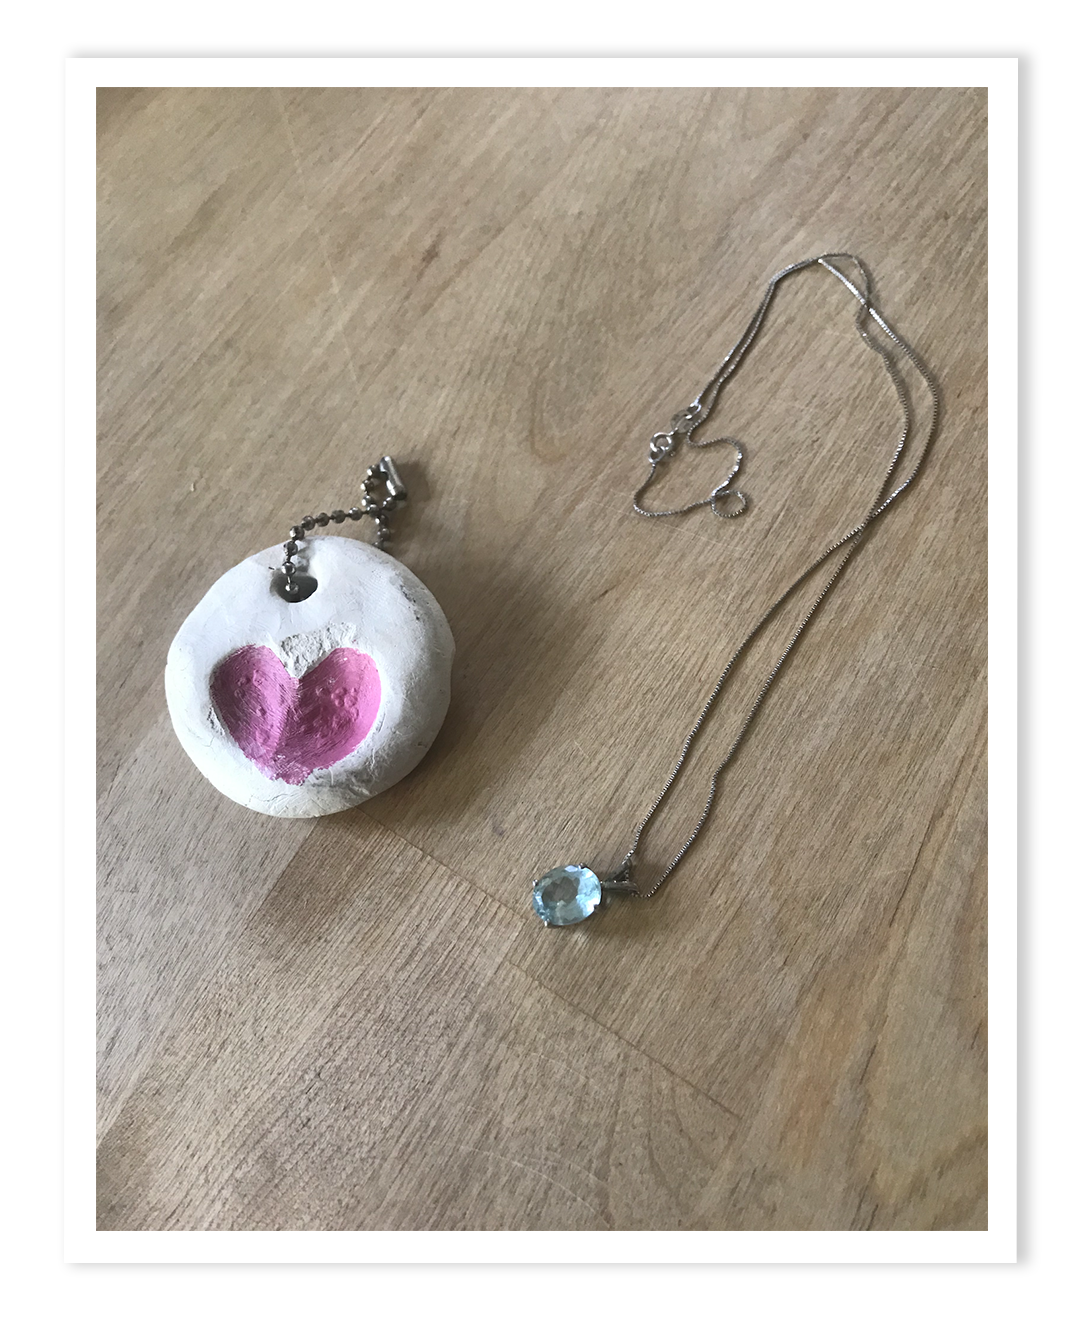 A necklace and charm made by Nicole's child